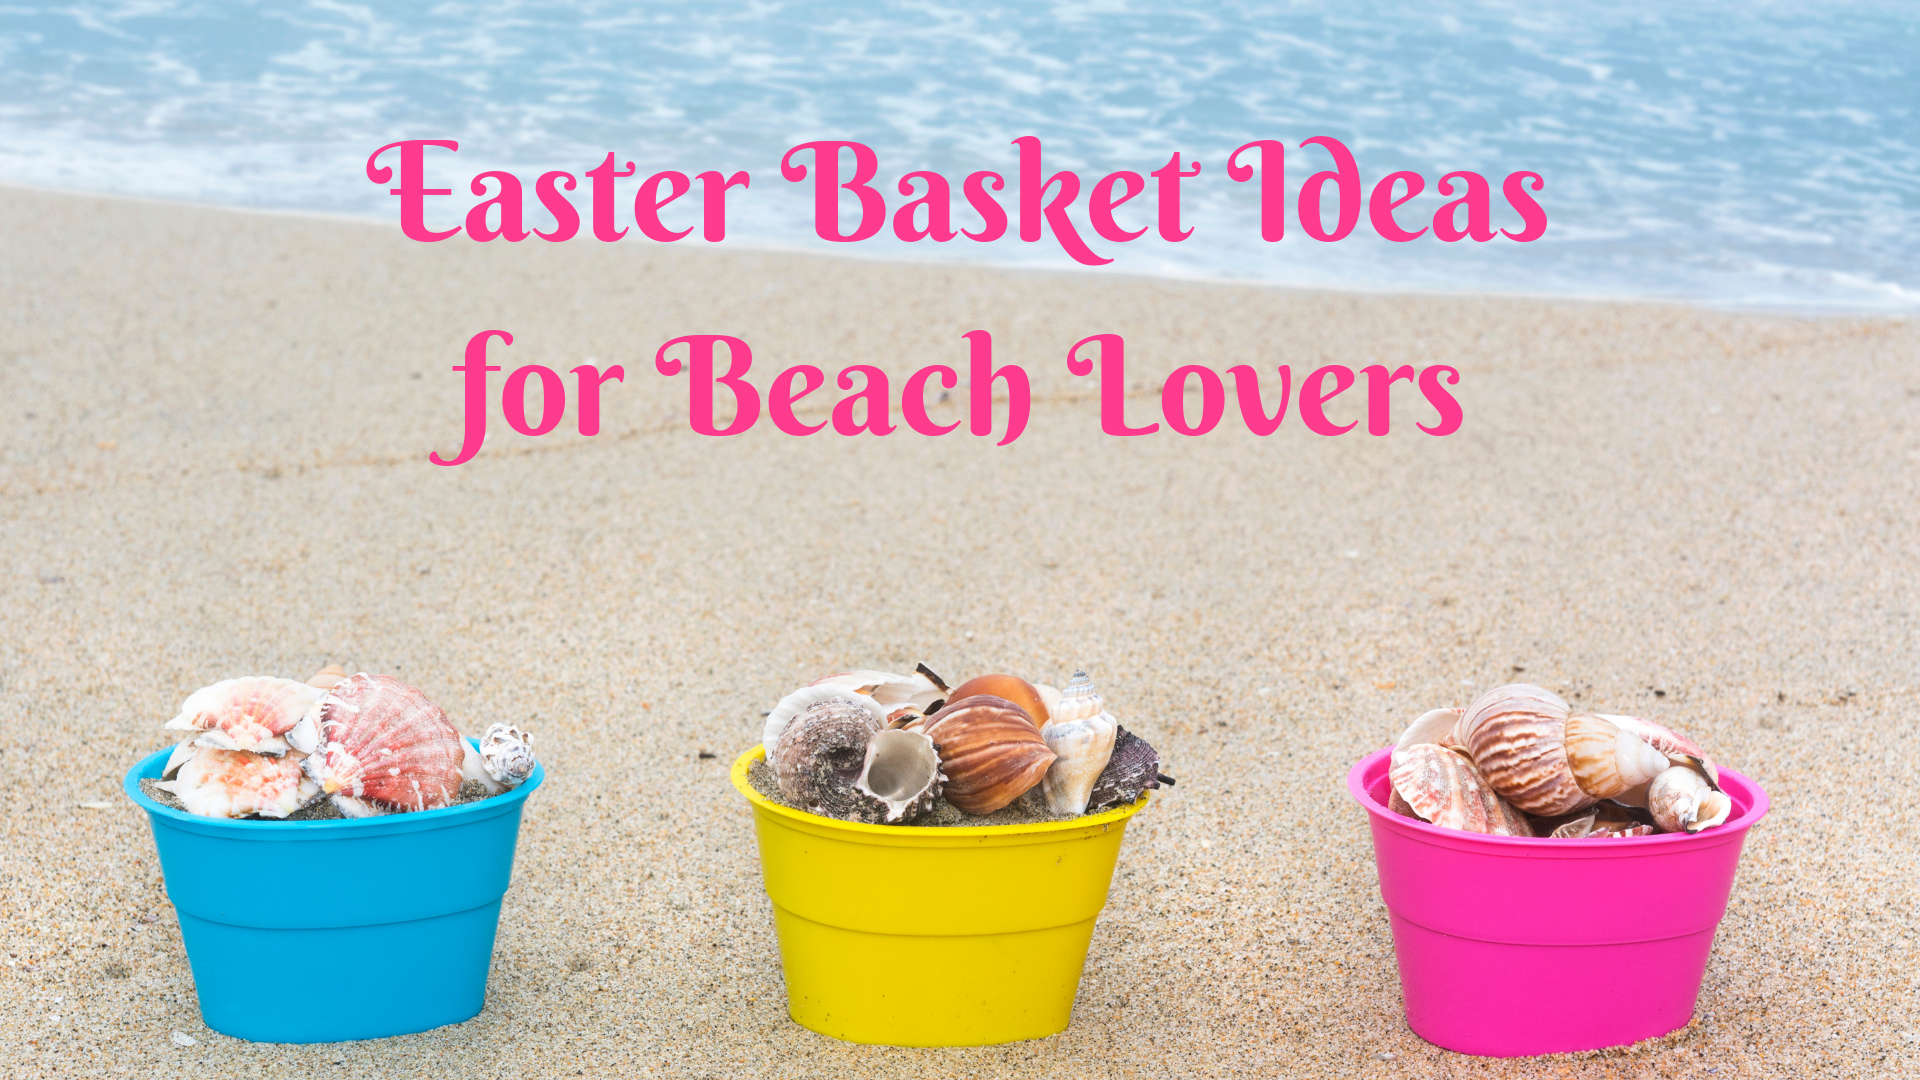 Beach-Themed Easter Baskets